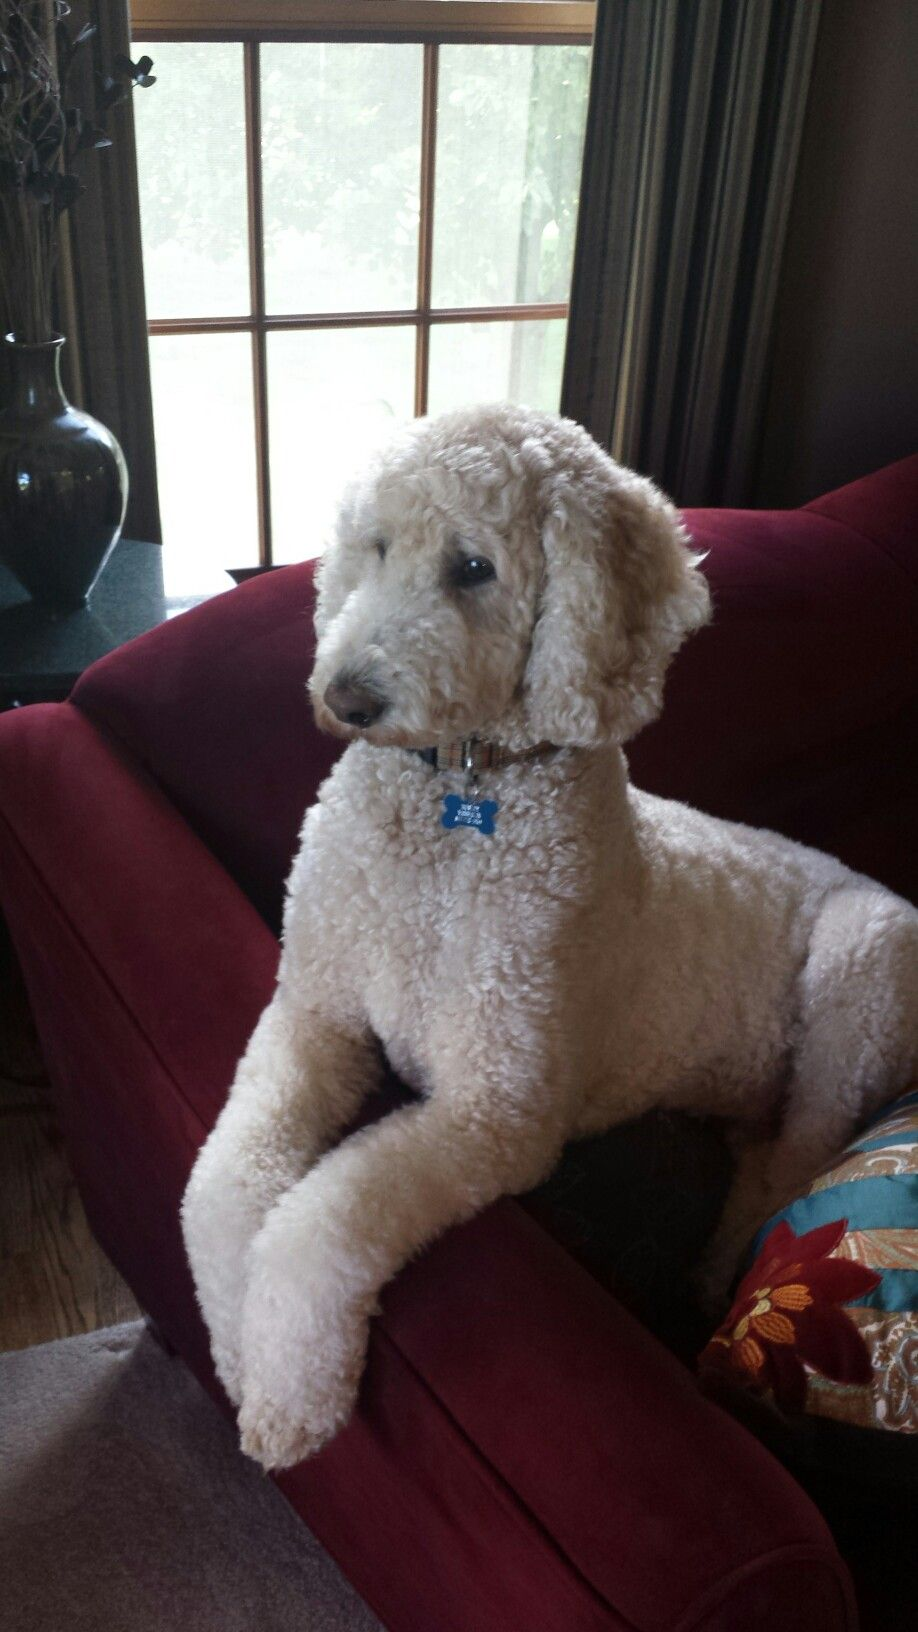 Standard poodle haircuts or of unless soft haircuts standard poodle - Bosley Are Standard Poodle